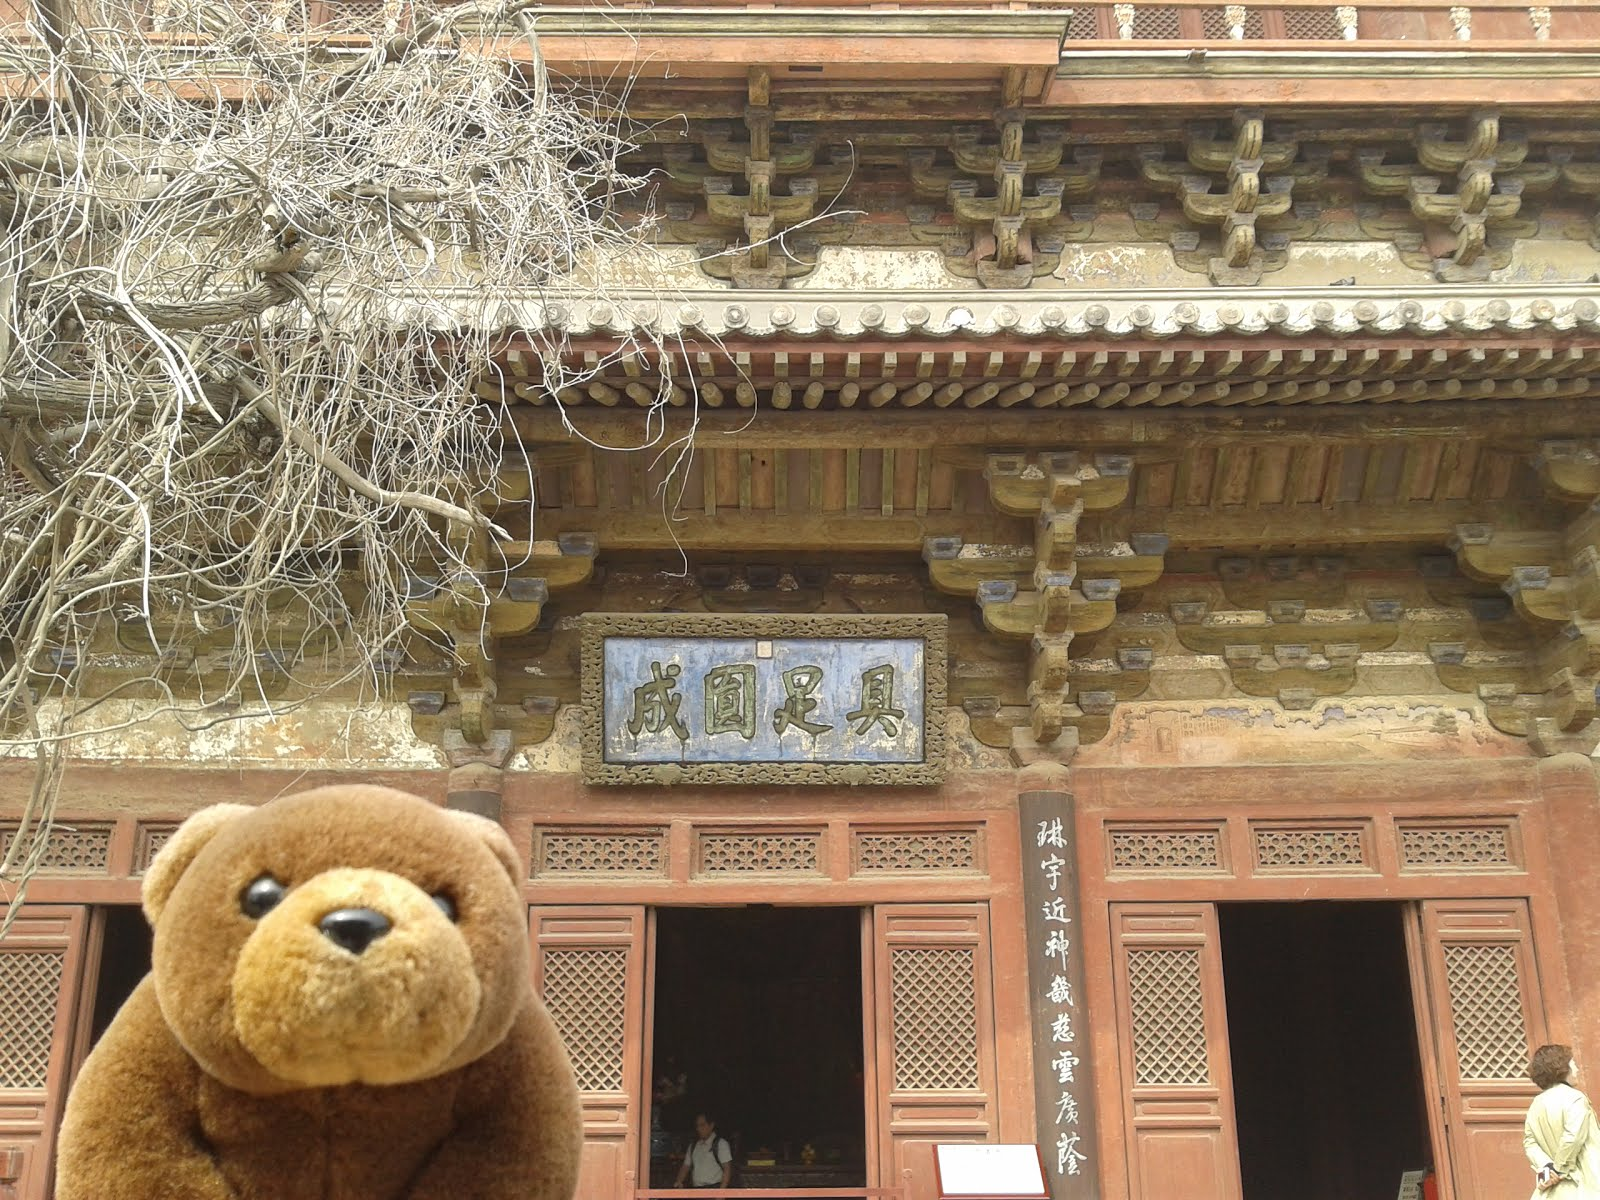 Teddy in front of Dule Temple, China